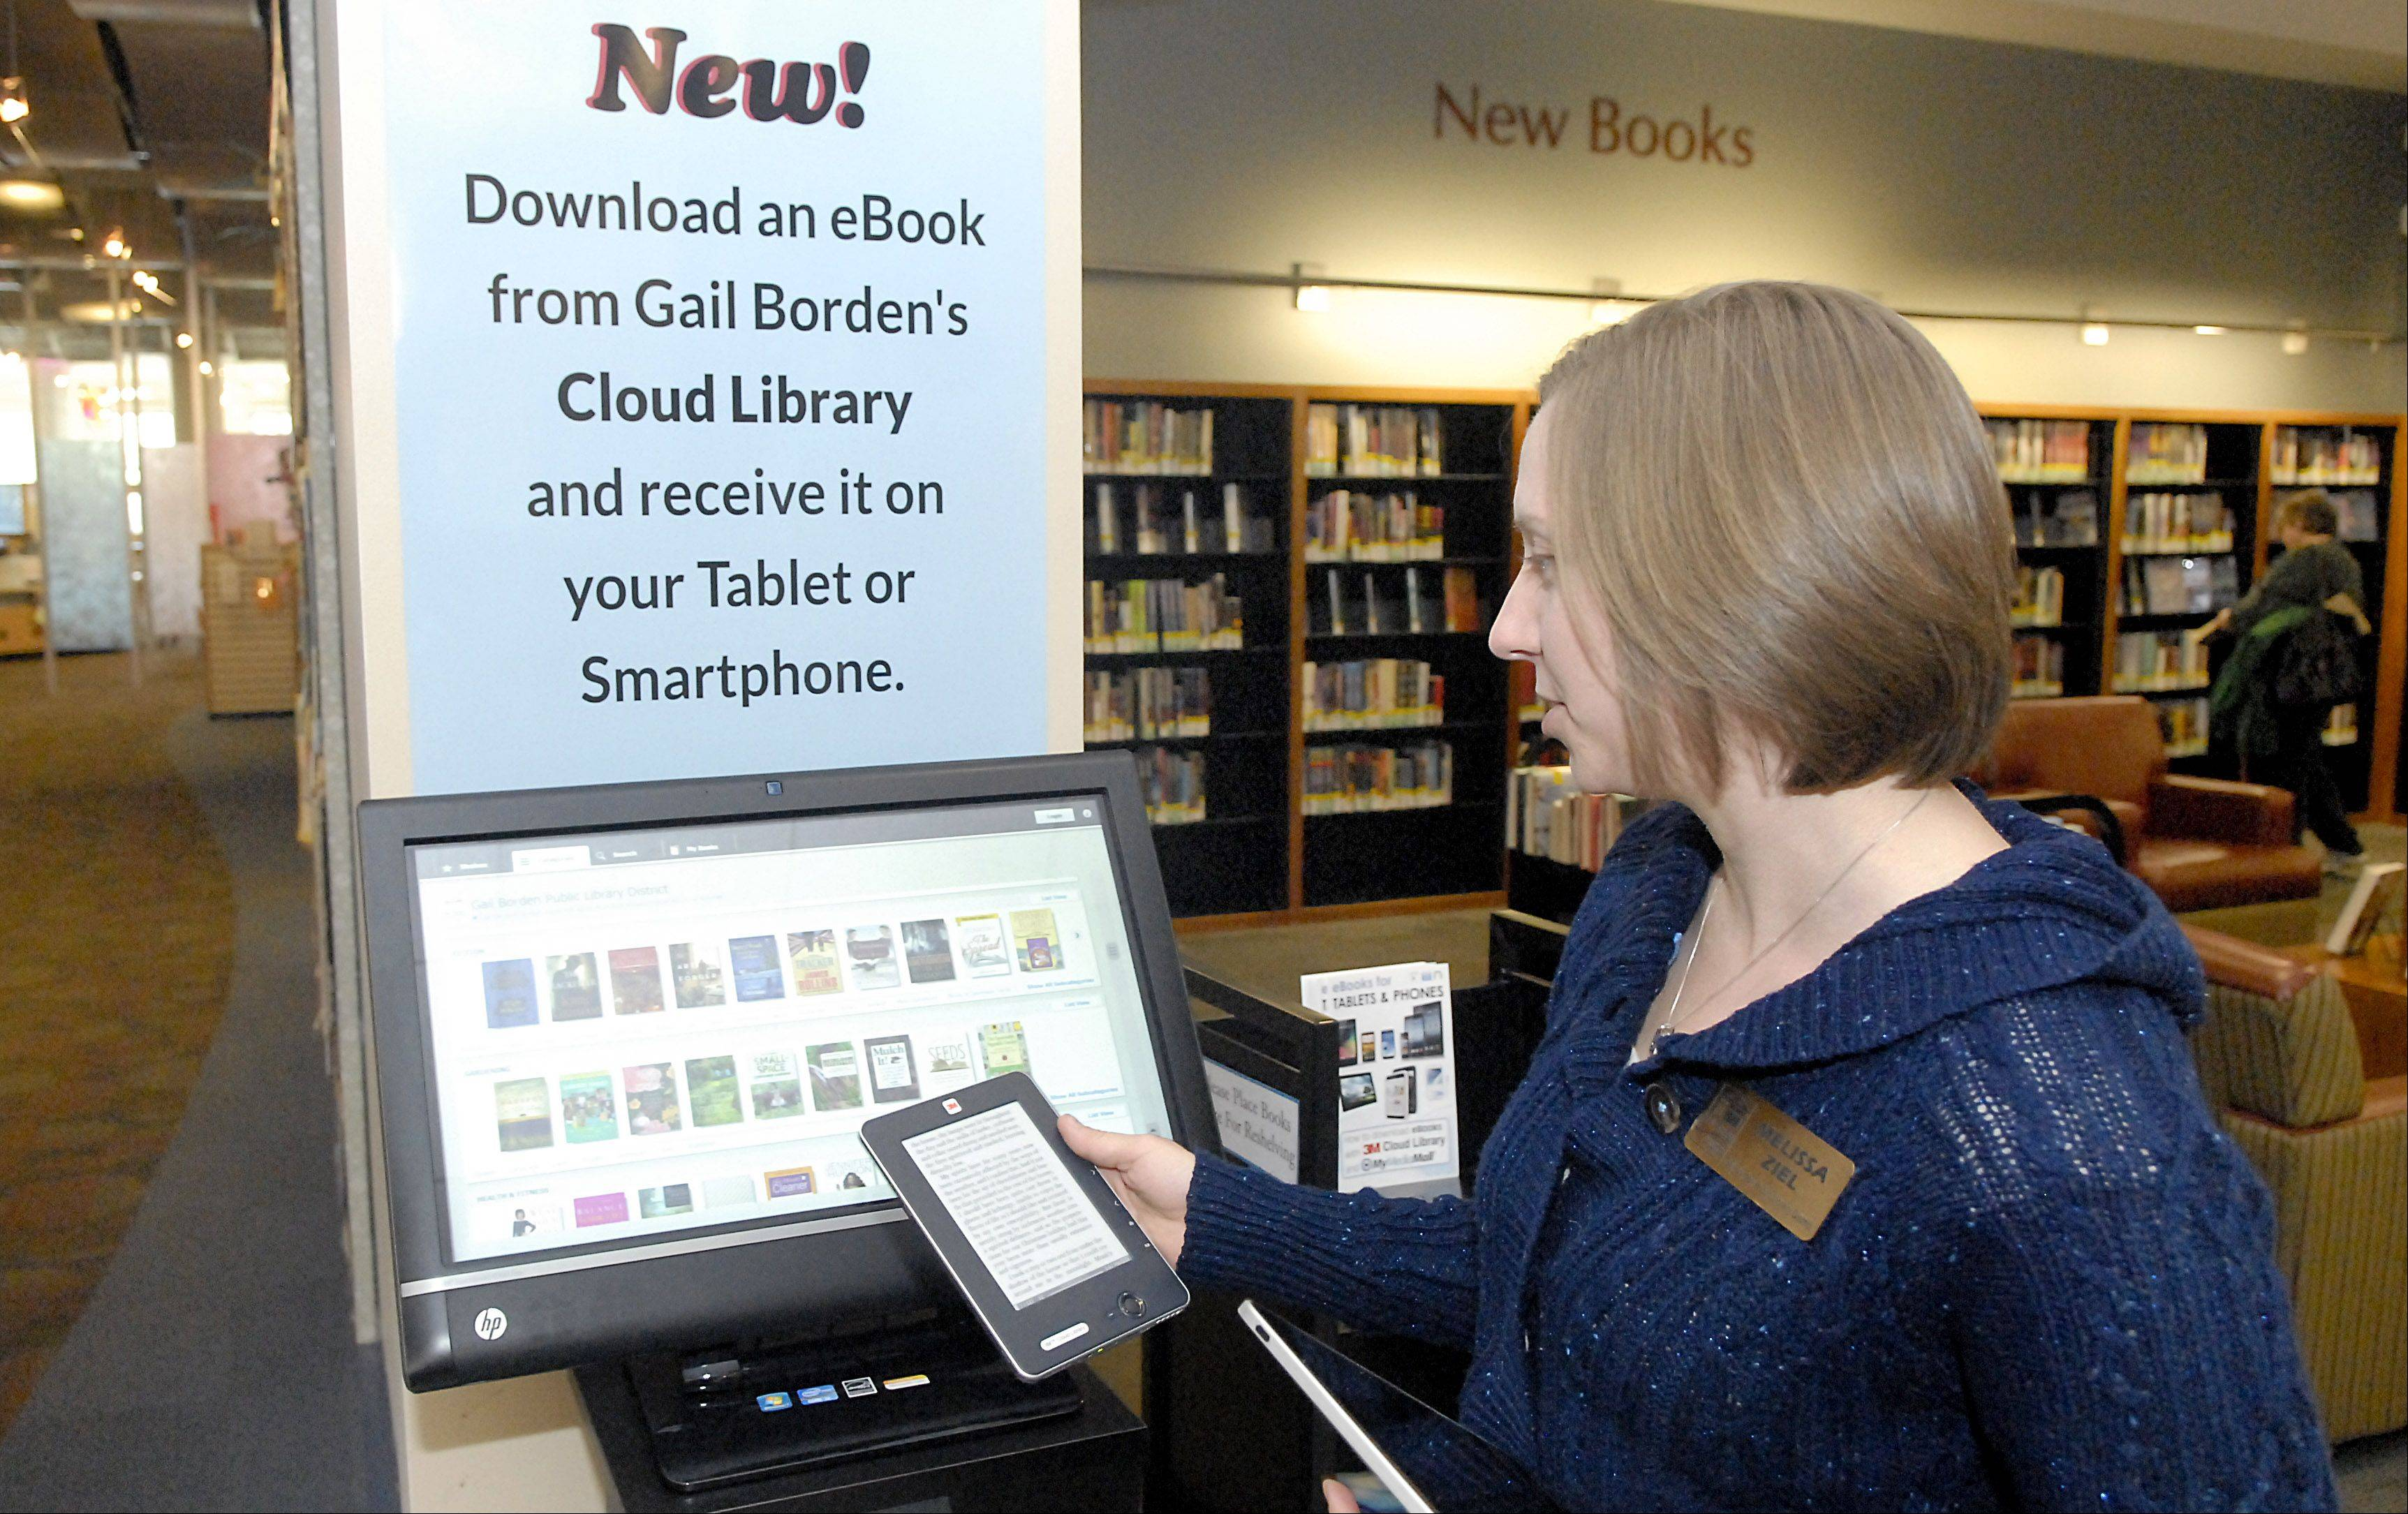 Melissa Ziel, Gail Borden Public Library's business librarian and e-book coordinator, demonstrates how to use the new 3M Cloud Library station, which allows people to download e-books wirelessly. The stations are located at the main library and the Rakow branch. $PHOTOCREDIT_ON$Laura Stoecker/lstoecker@dailyherald.com$PHOTOCREDIT_OFF$